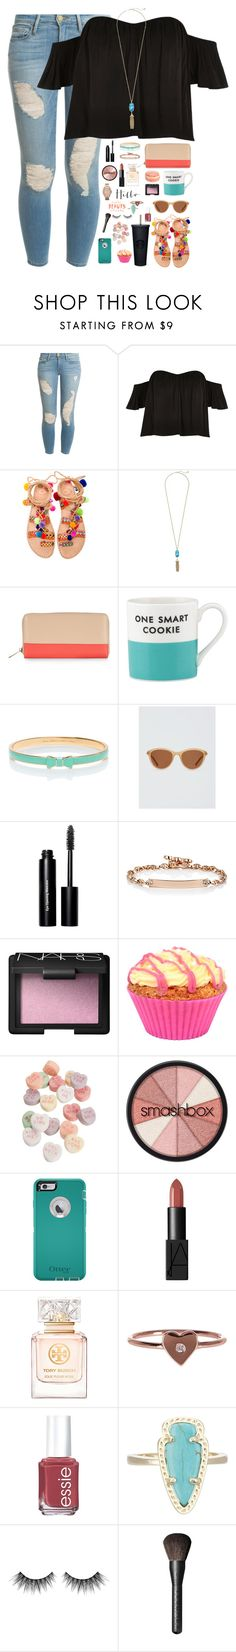 """the best revenge is to improve yourself"" by kaley-ii ❤ liked on Polyvore featuring Frame Denim, River Island, Elina Linardaki, Kendra Scott, Accessorize, Kate Spade, Draper James, Bobbi Brown Cosmetics, Hoorsenbuhs and NARS Cosmetics"